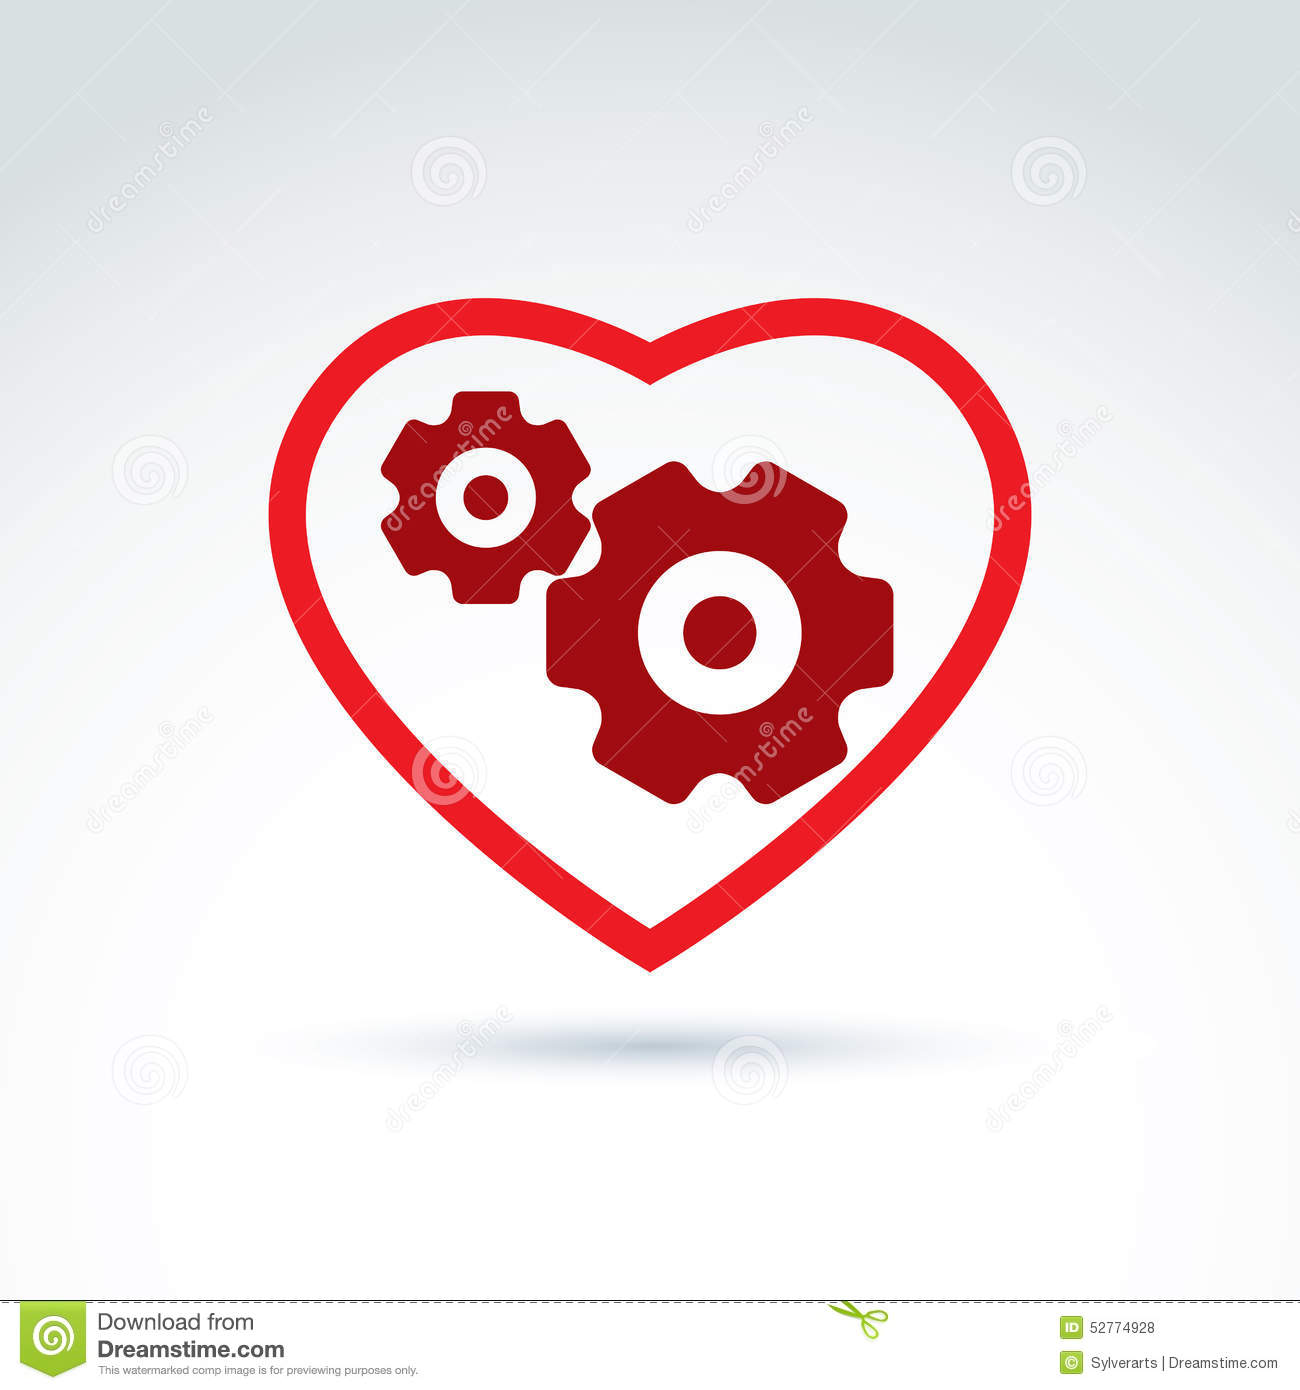 Gears And Cogs In A Shape Of Heart System Theme Icon Heart Of M